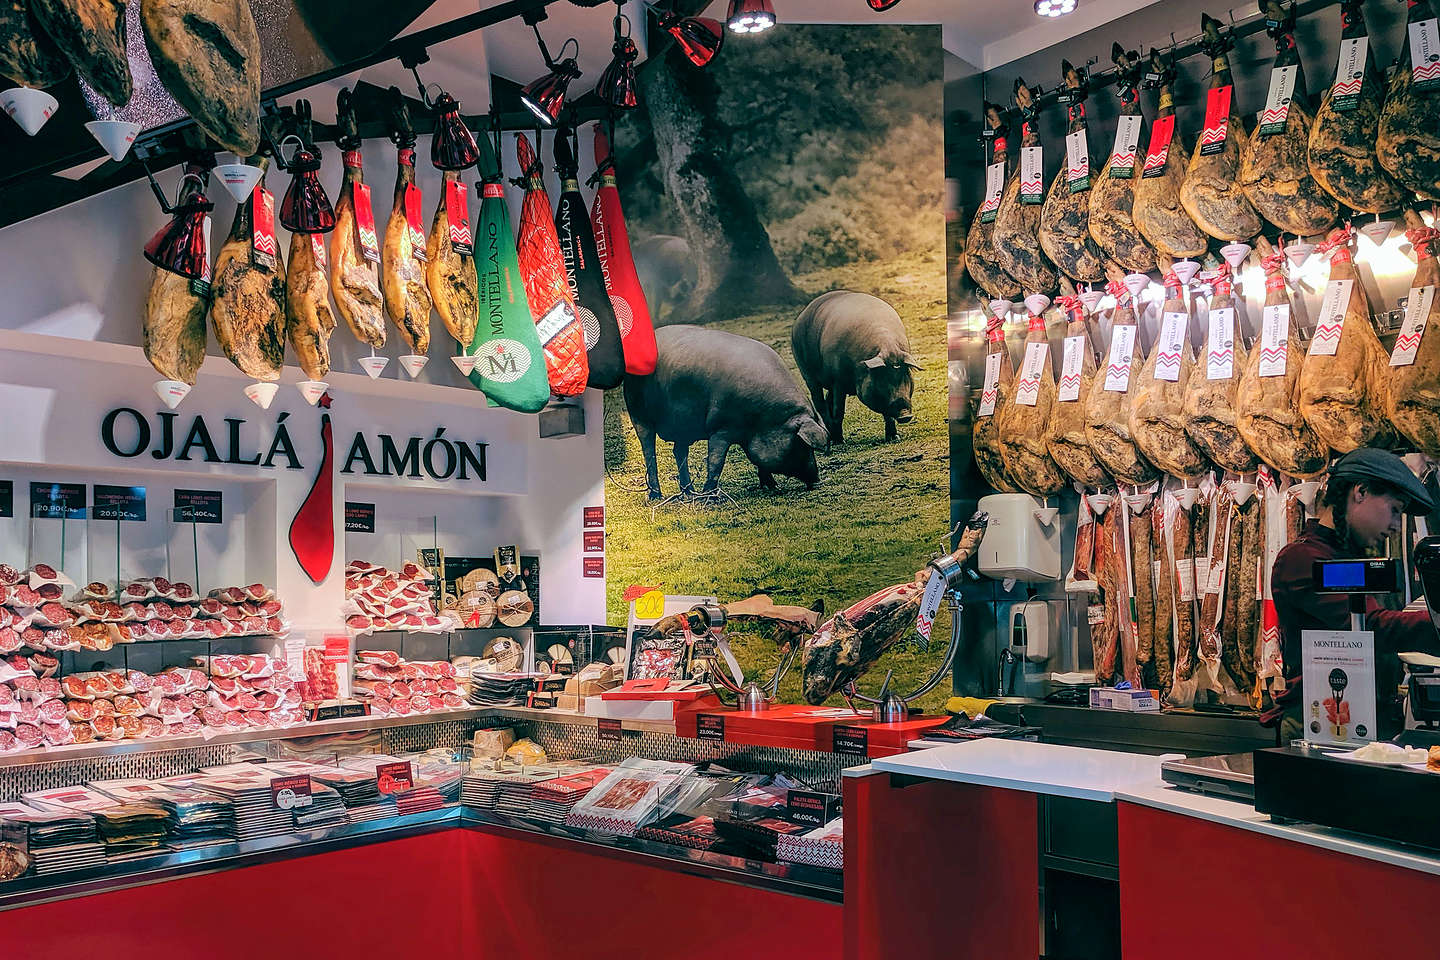 Jamon, as far as the eye can see